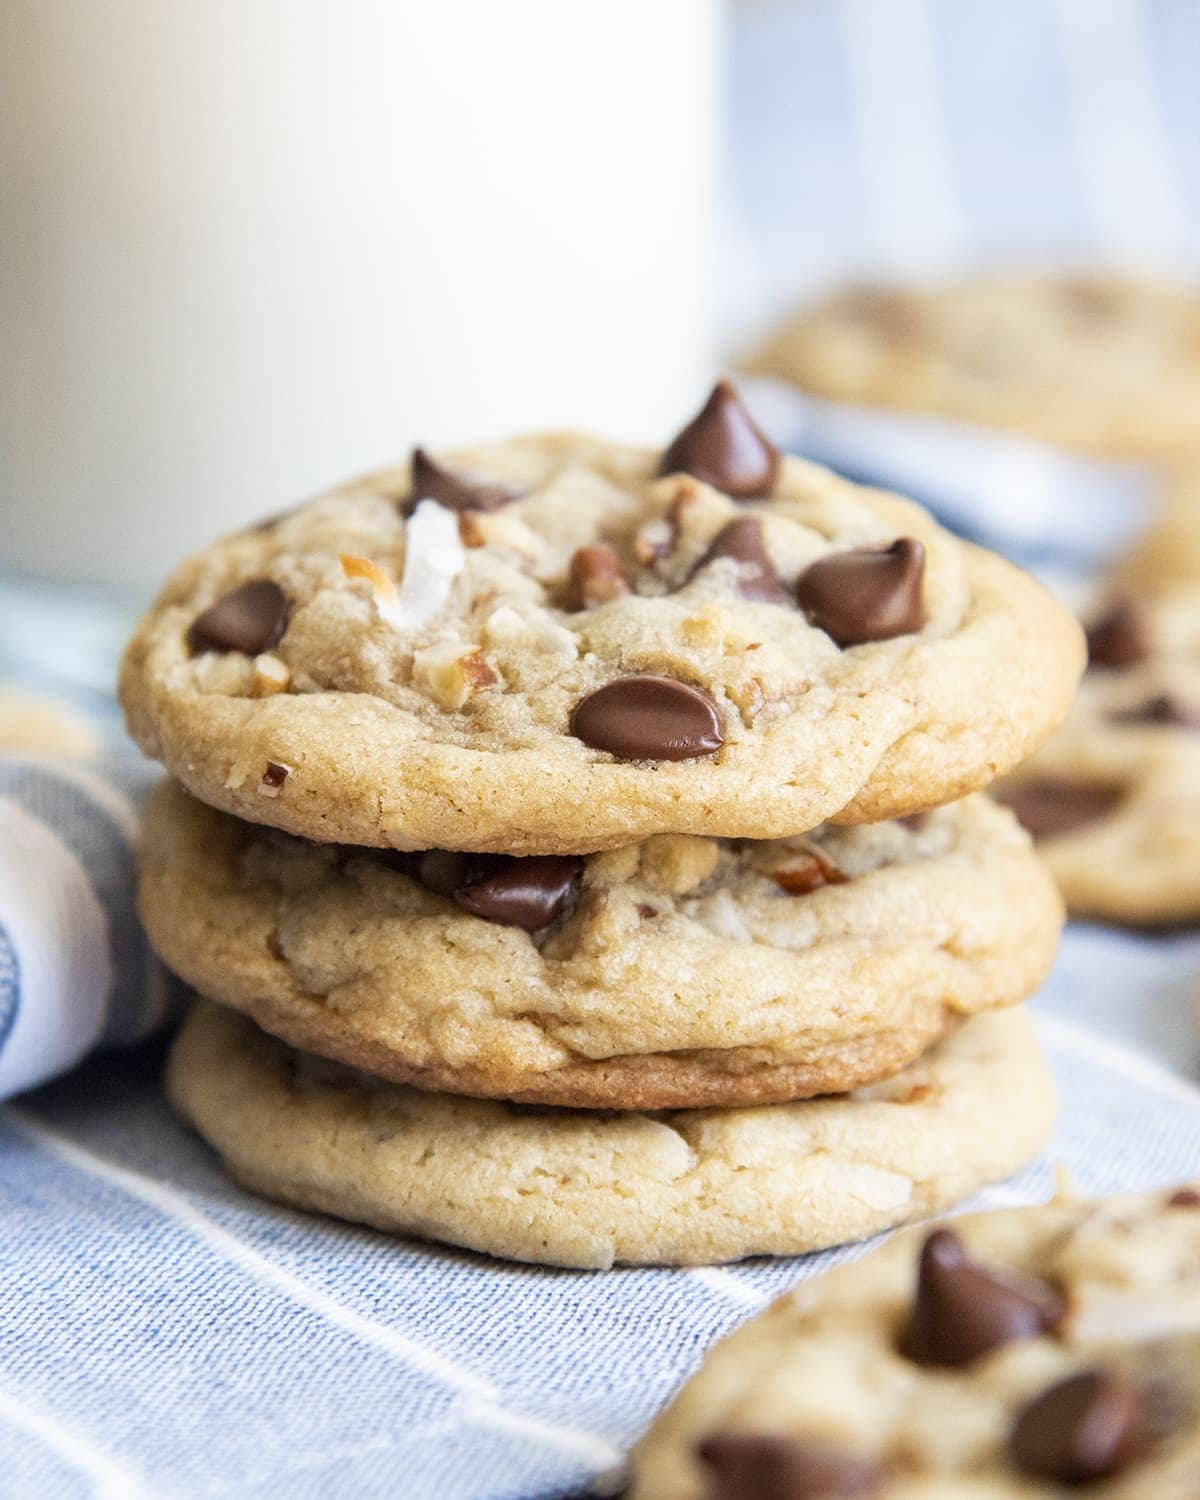 A stack of 3 drop style cookies with chocolate chips, pecans, and shredded coconut.